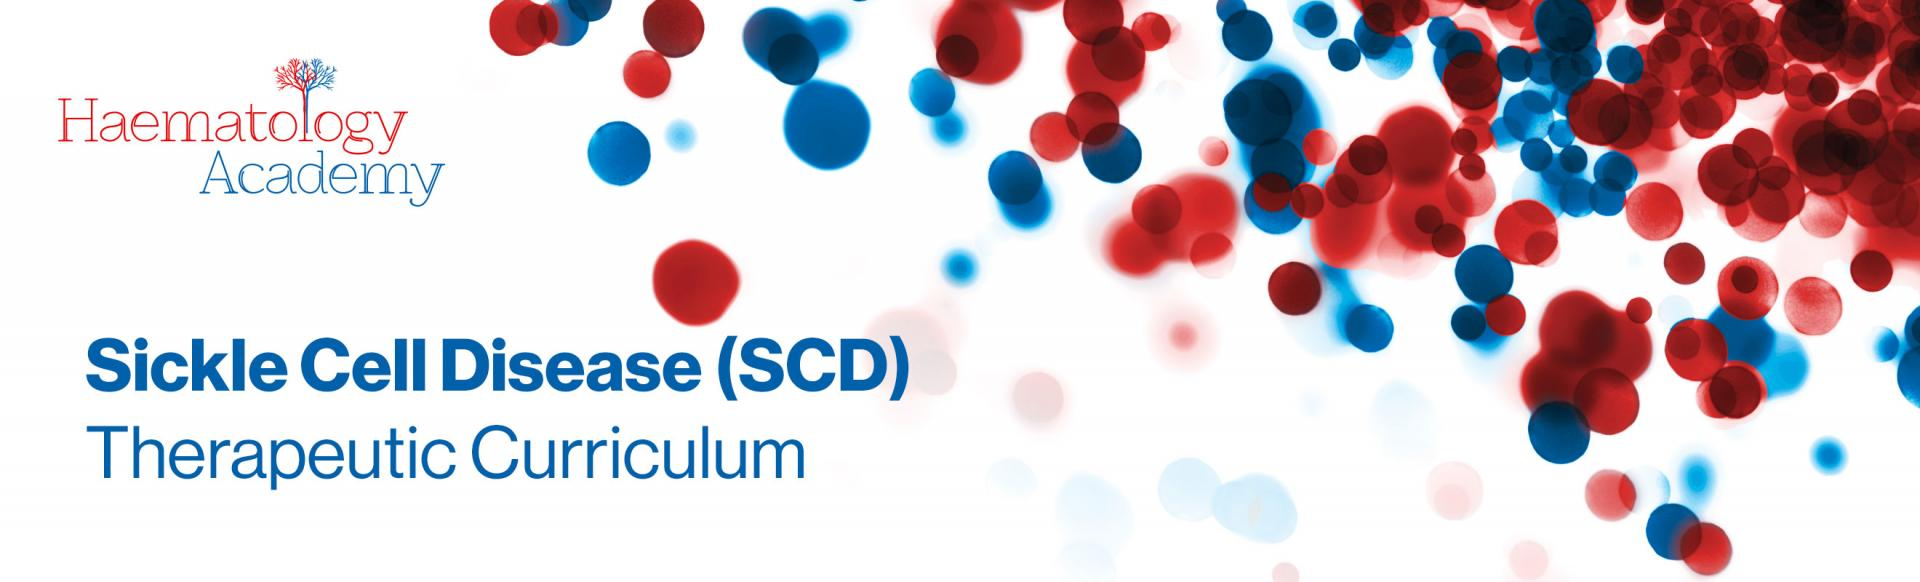 Top banner. Sickle Cell Disease (SCD) Therapeutic curriculum.